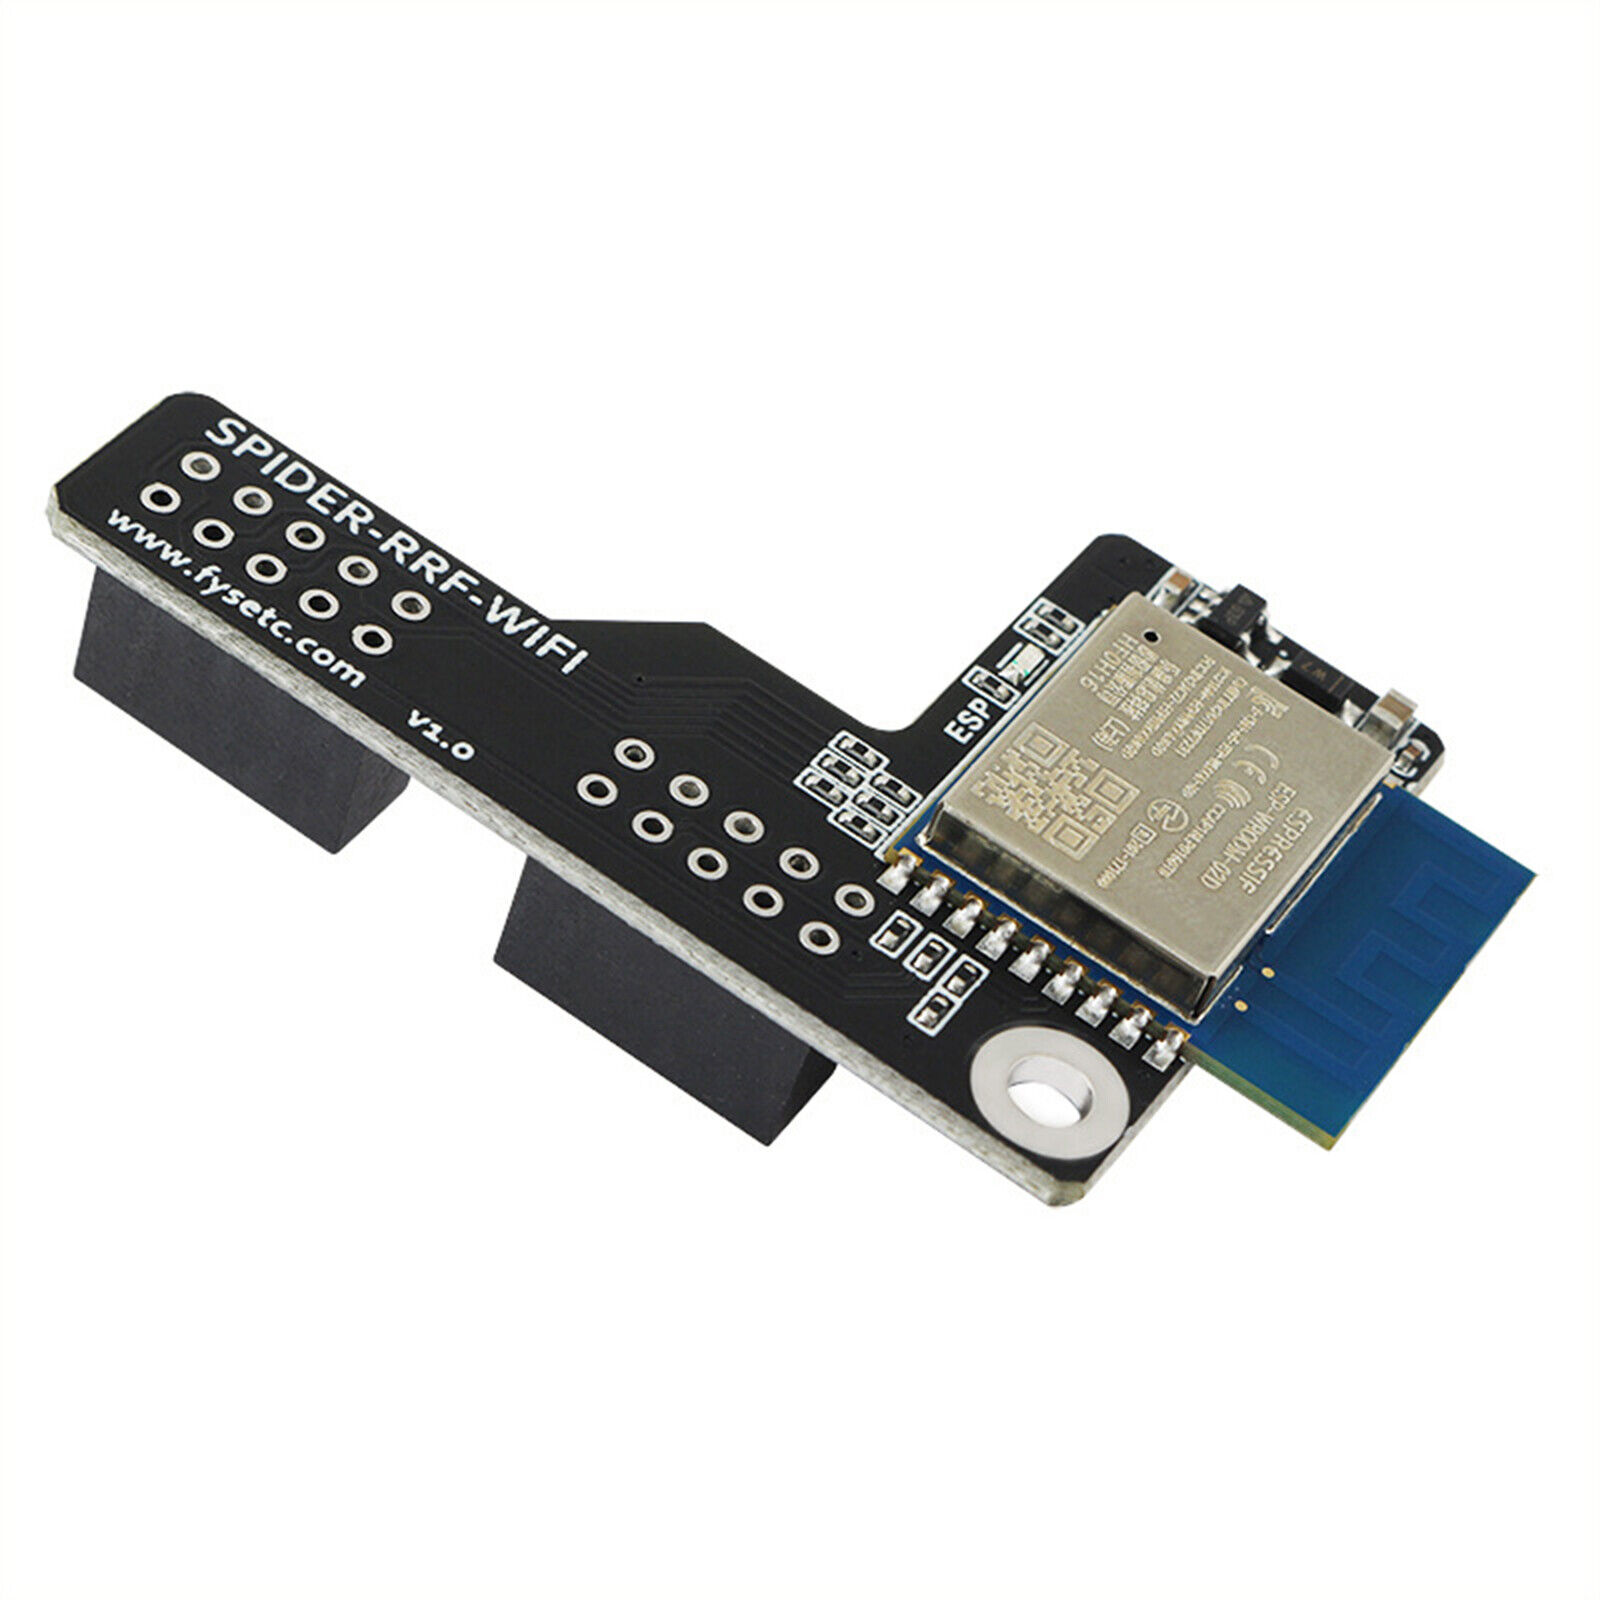 Sprider V1.1 WIFI Module Antenna Support Rrf Firmware for 3D Printer Motherboard